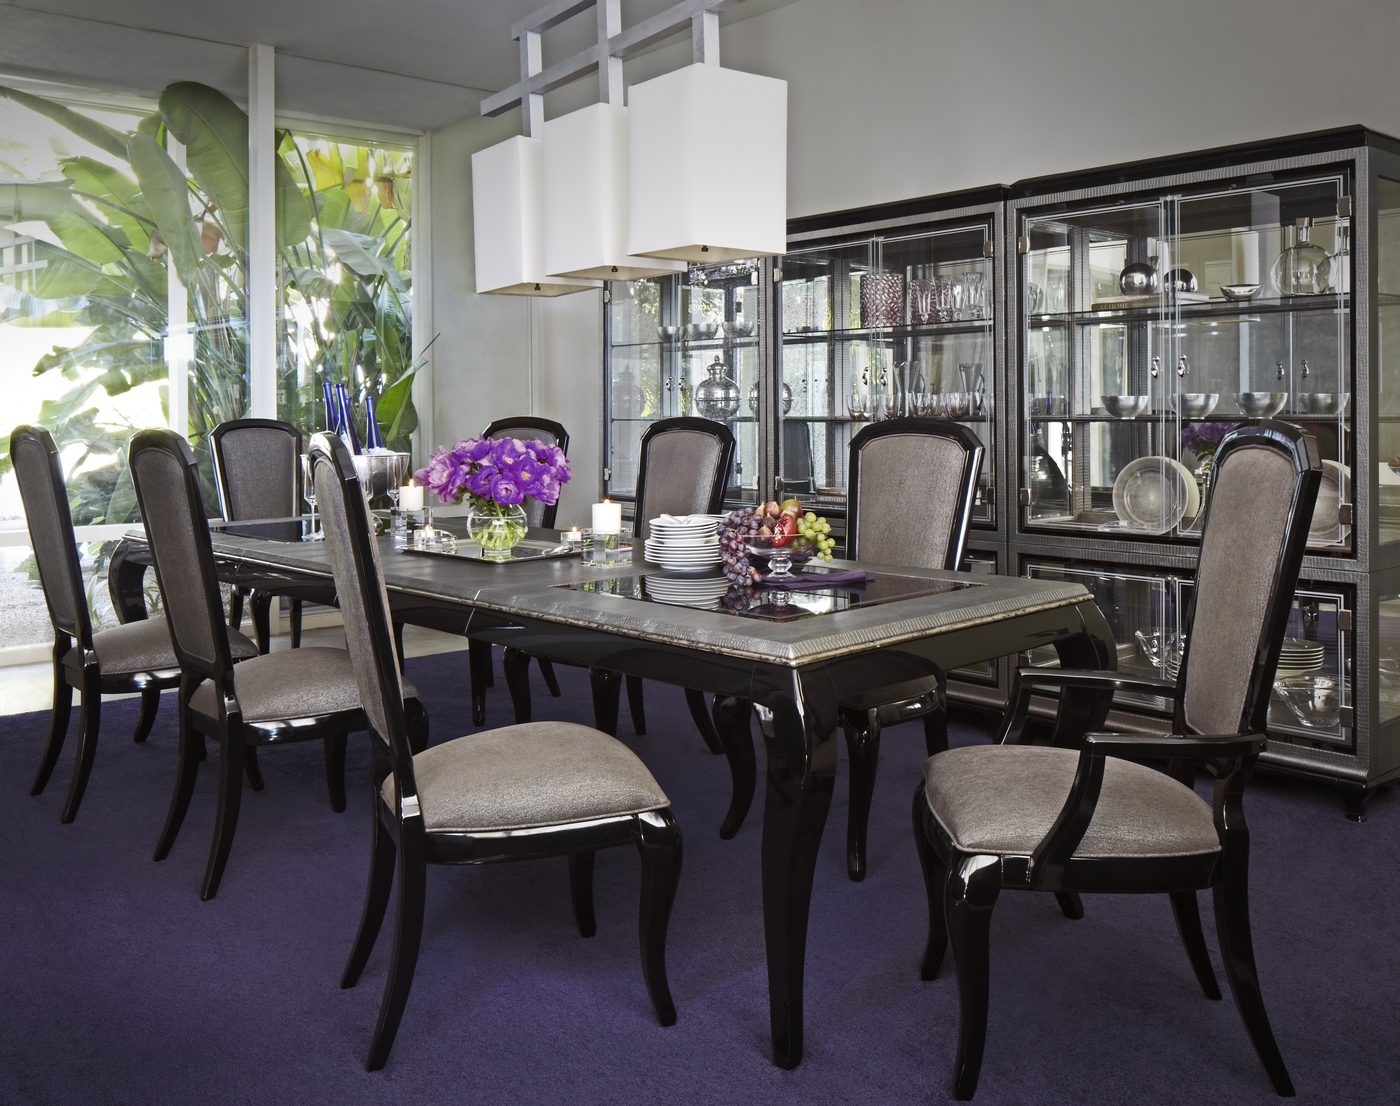 New Michael Amini After Eight 5 Piece Formal Dining Room Set Black Onyx by AICO